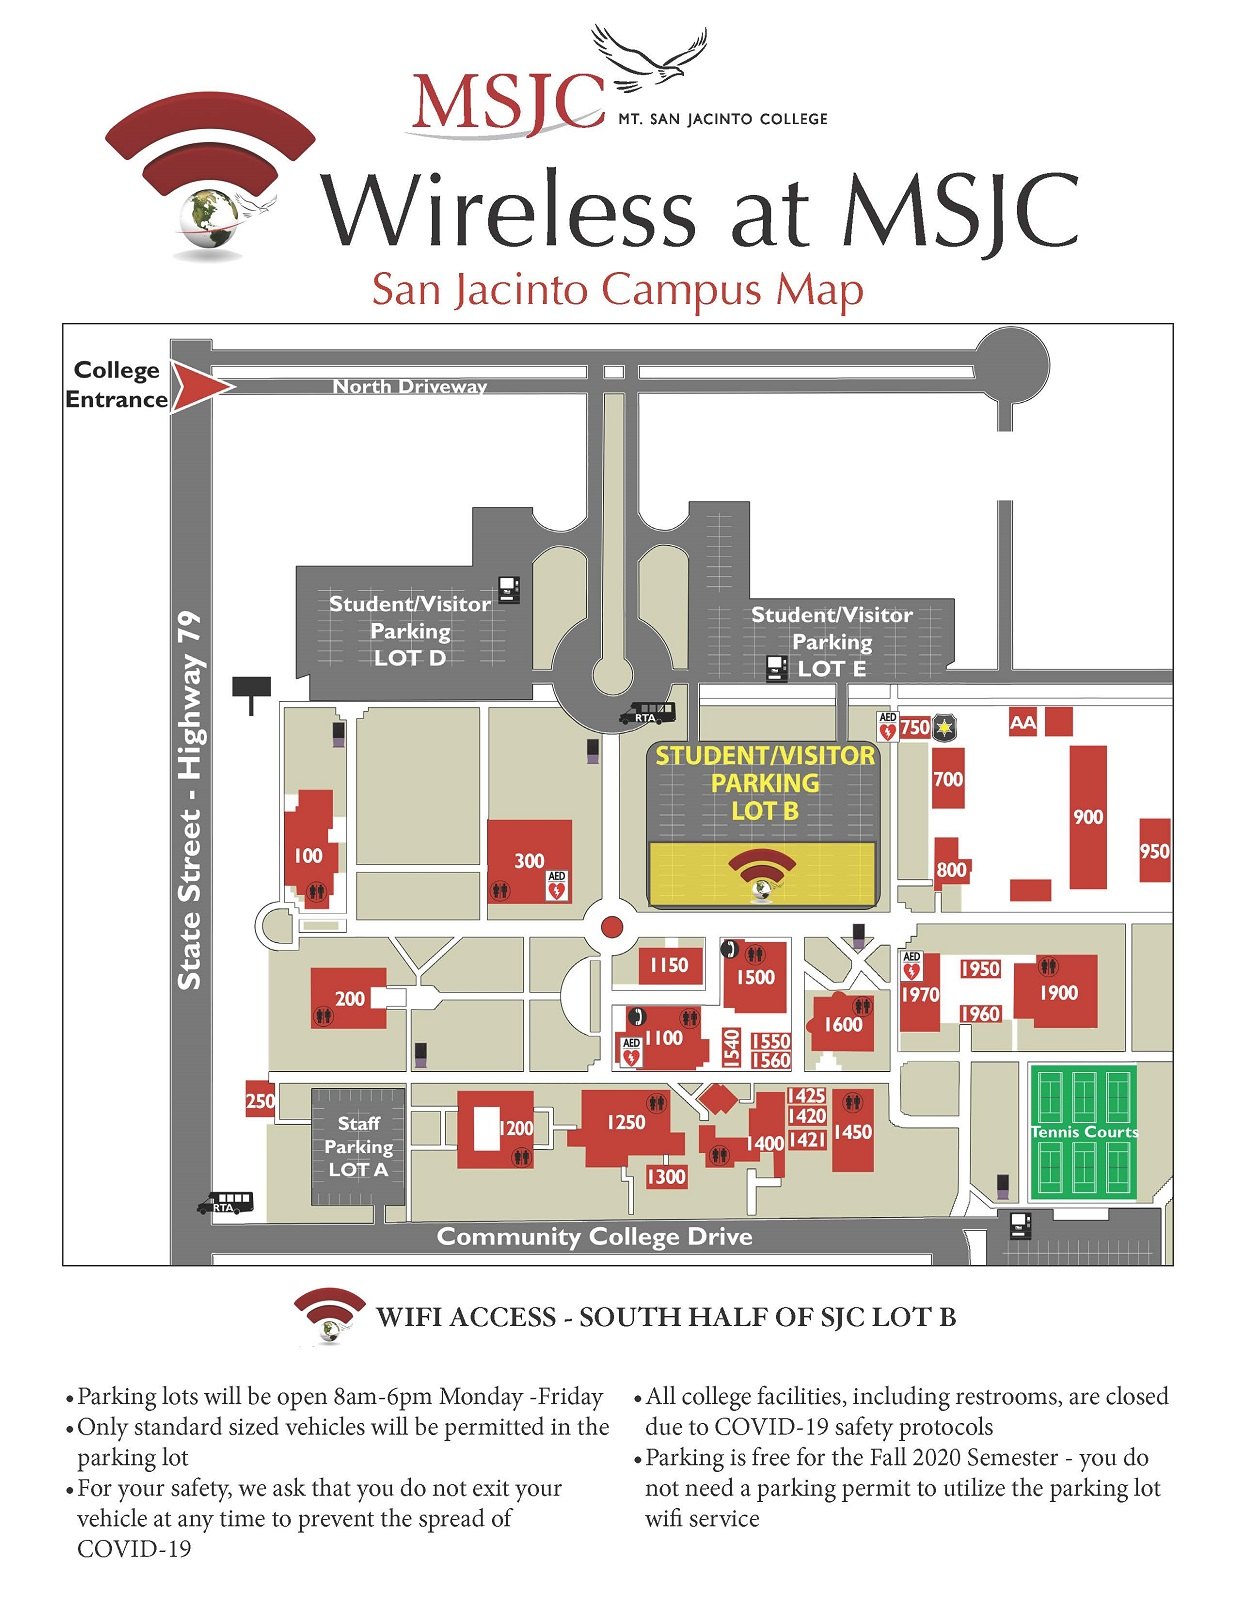 San Jacinto Campus wireless access